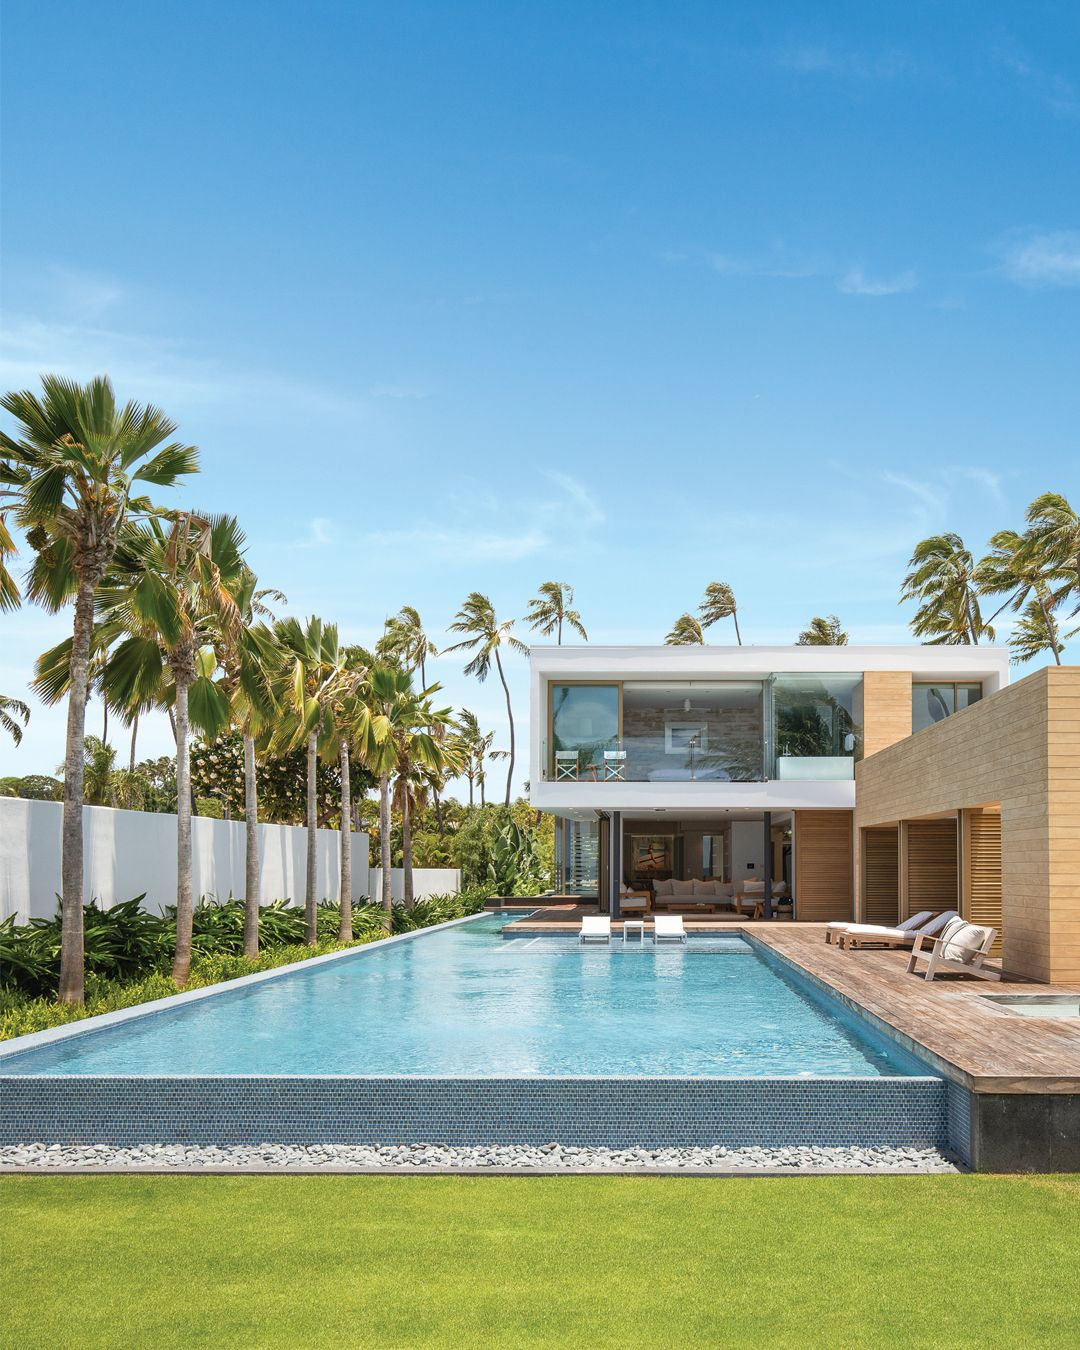 Hawaiian Home Design Ideas: This Award-Winning Kahala Home Maximizes Ocean Views And